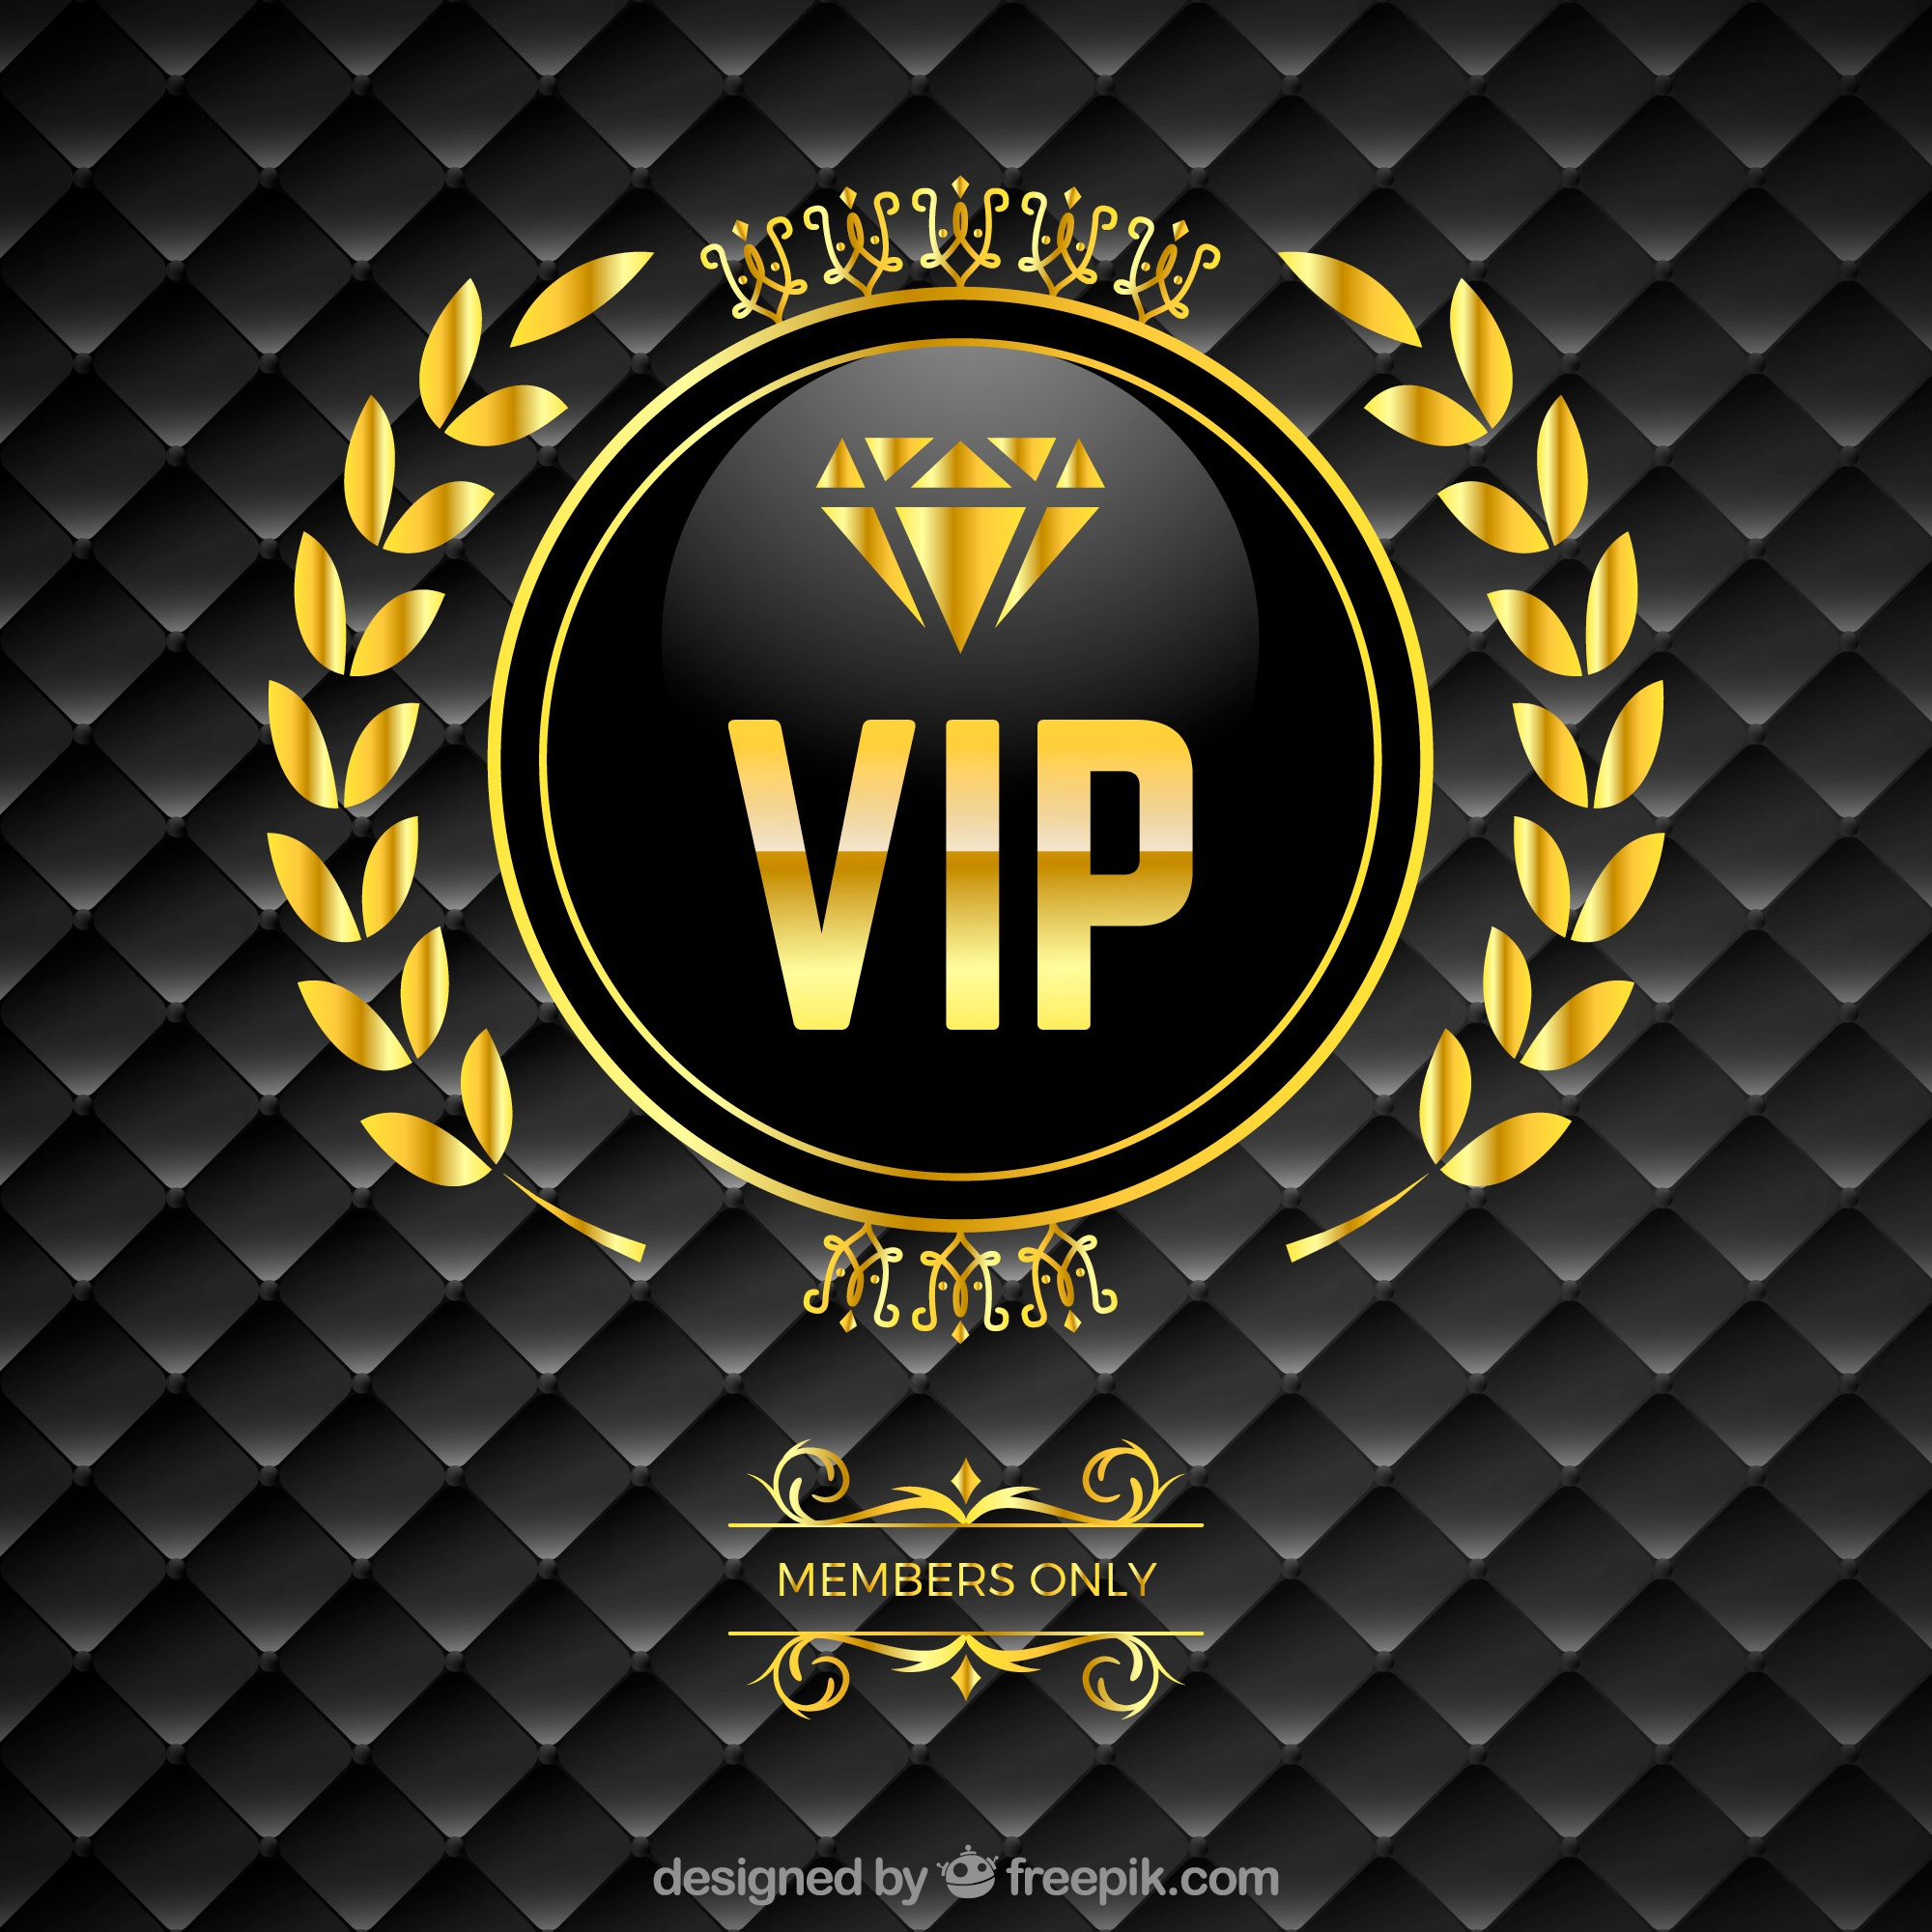 Vip padded background with golden logo